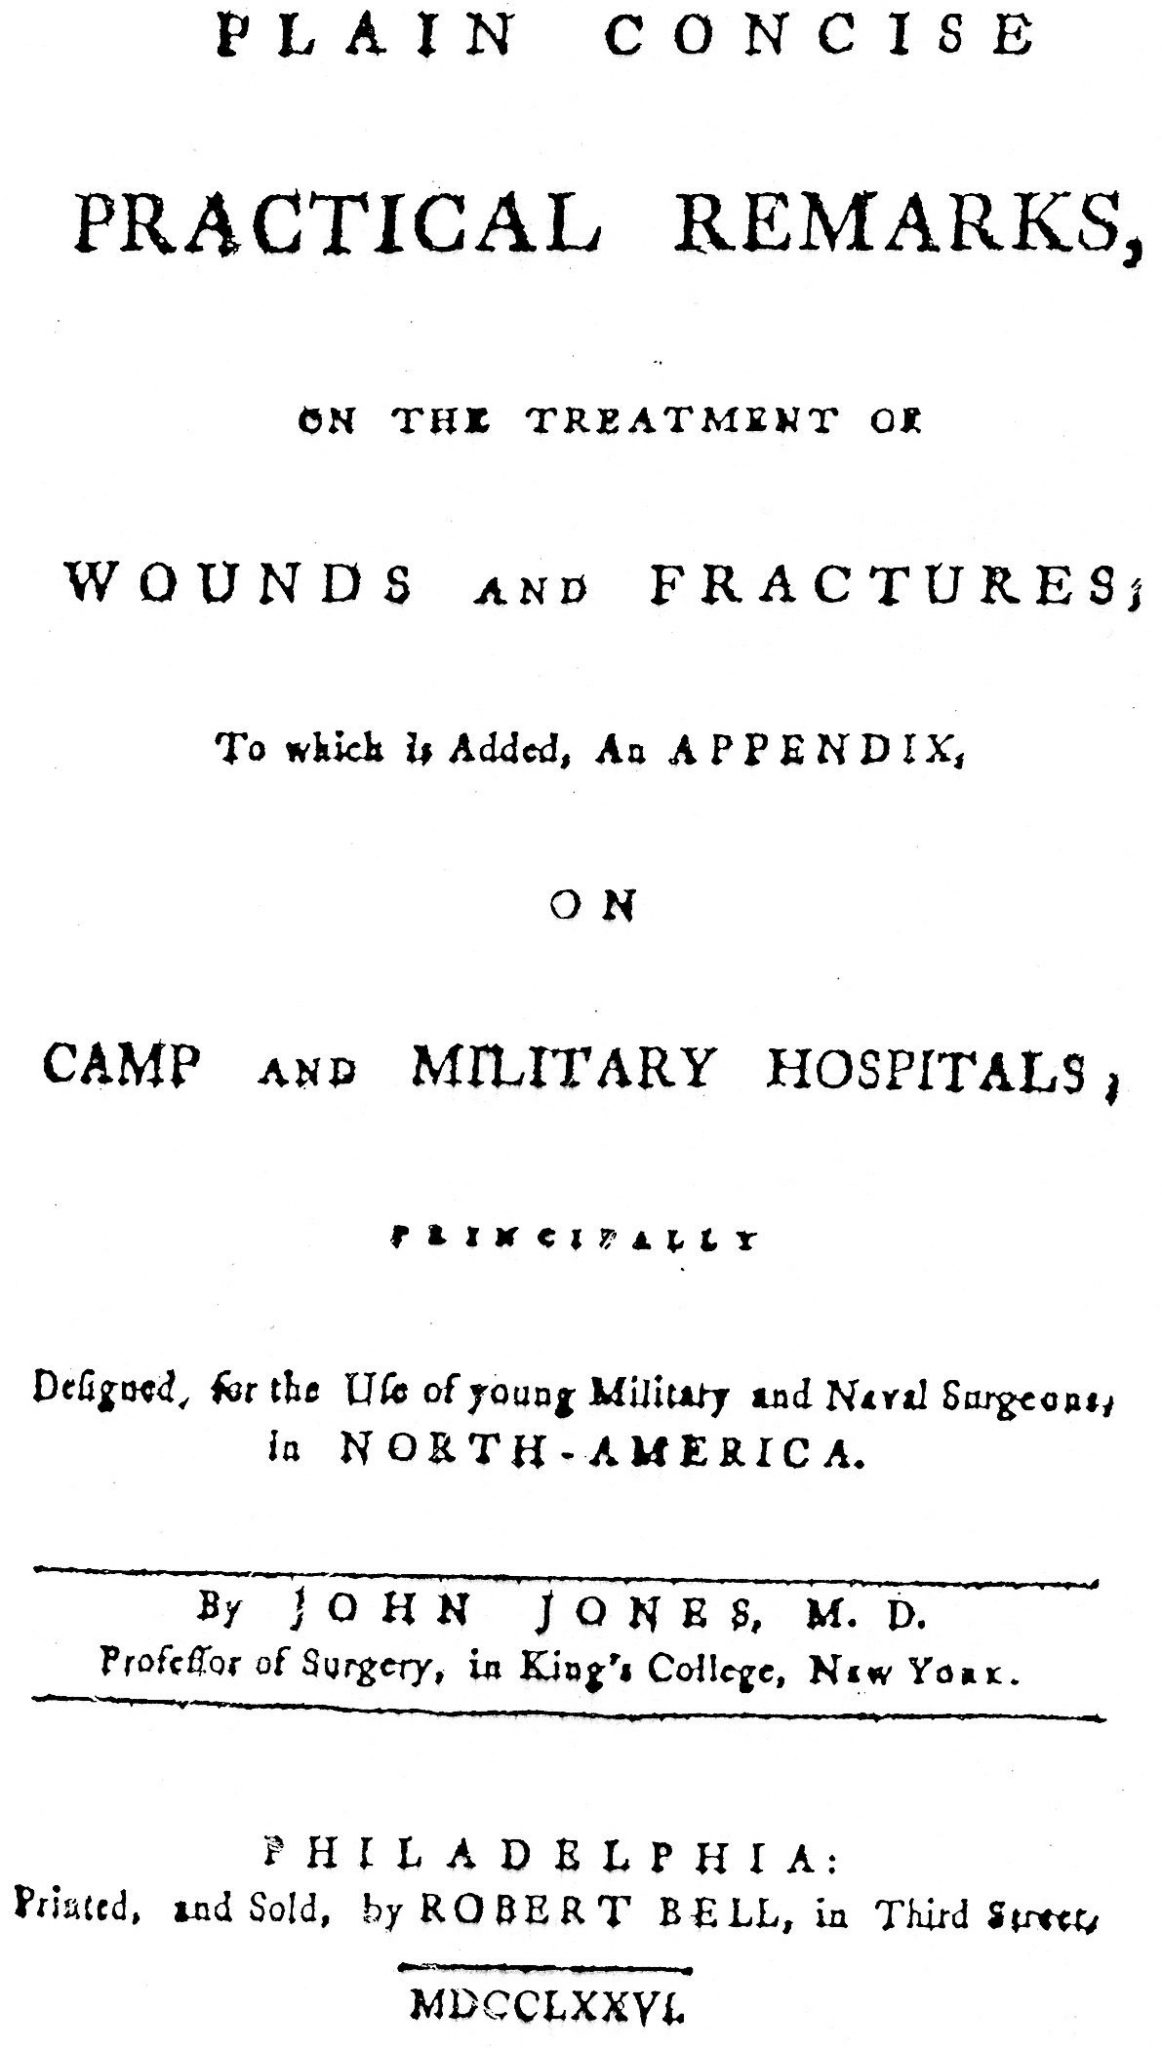 Plain Concise, Practical Remarks on the Treatment of Wounds and Fractures, by John Jones, MD.